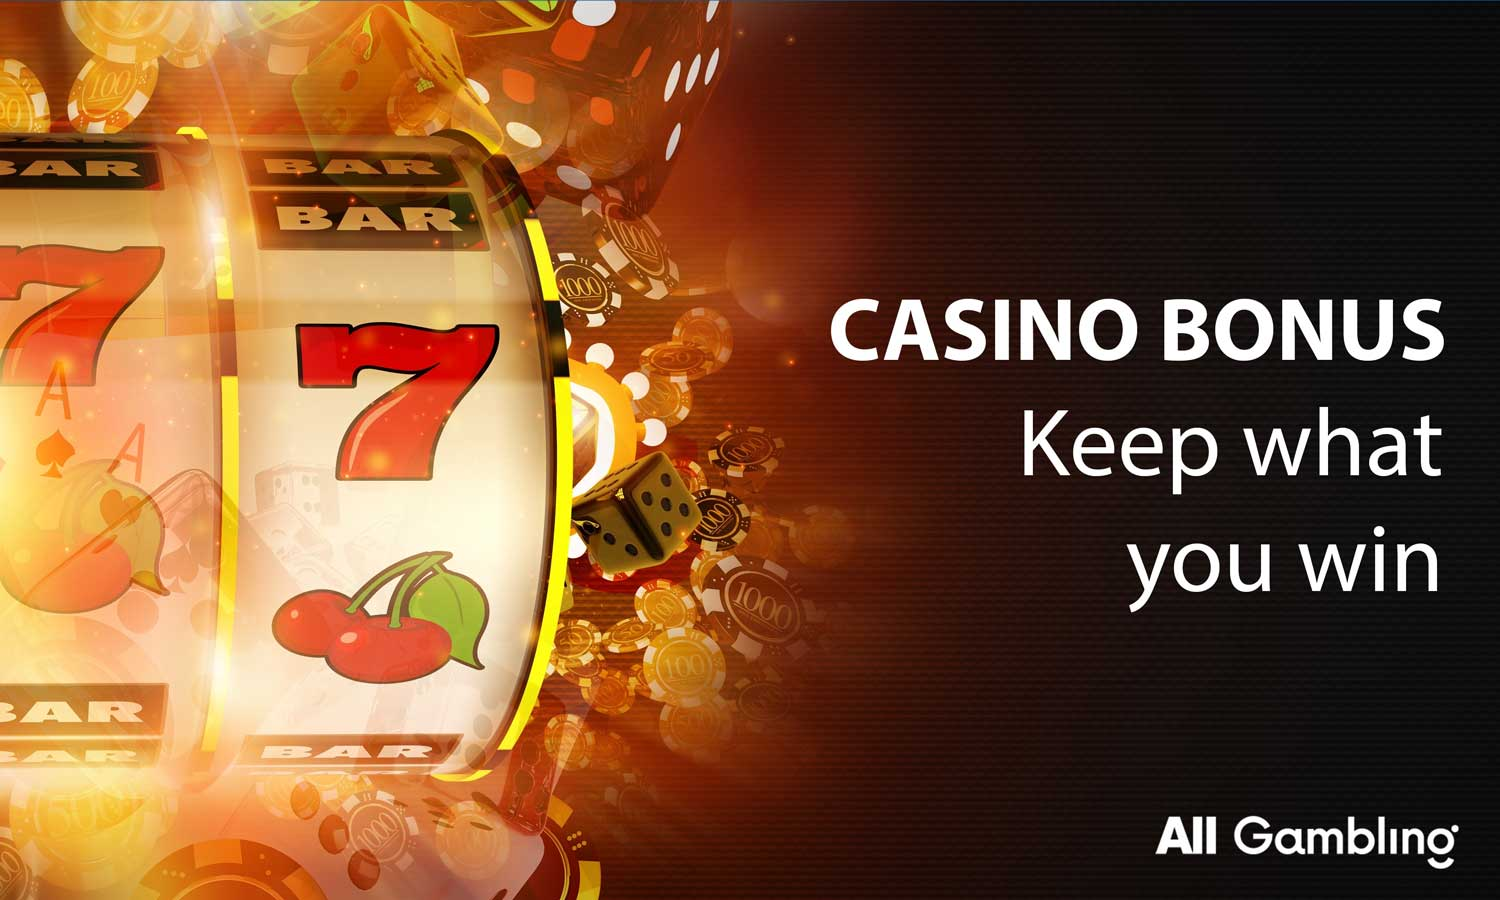 casino-bonus-keep-what-you-win